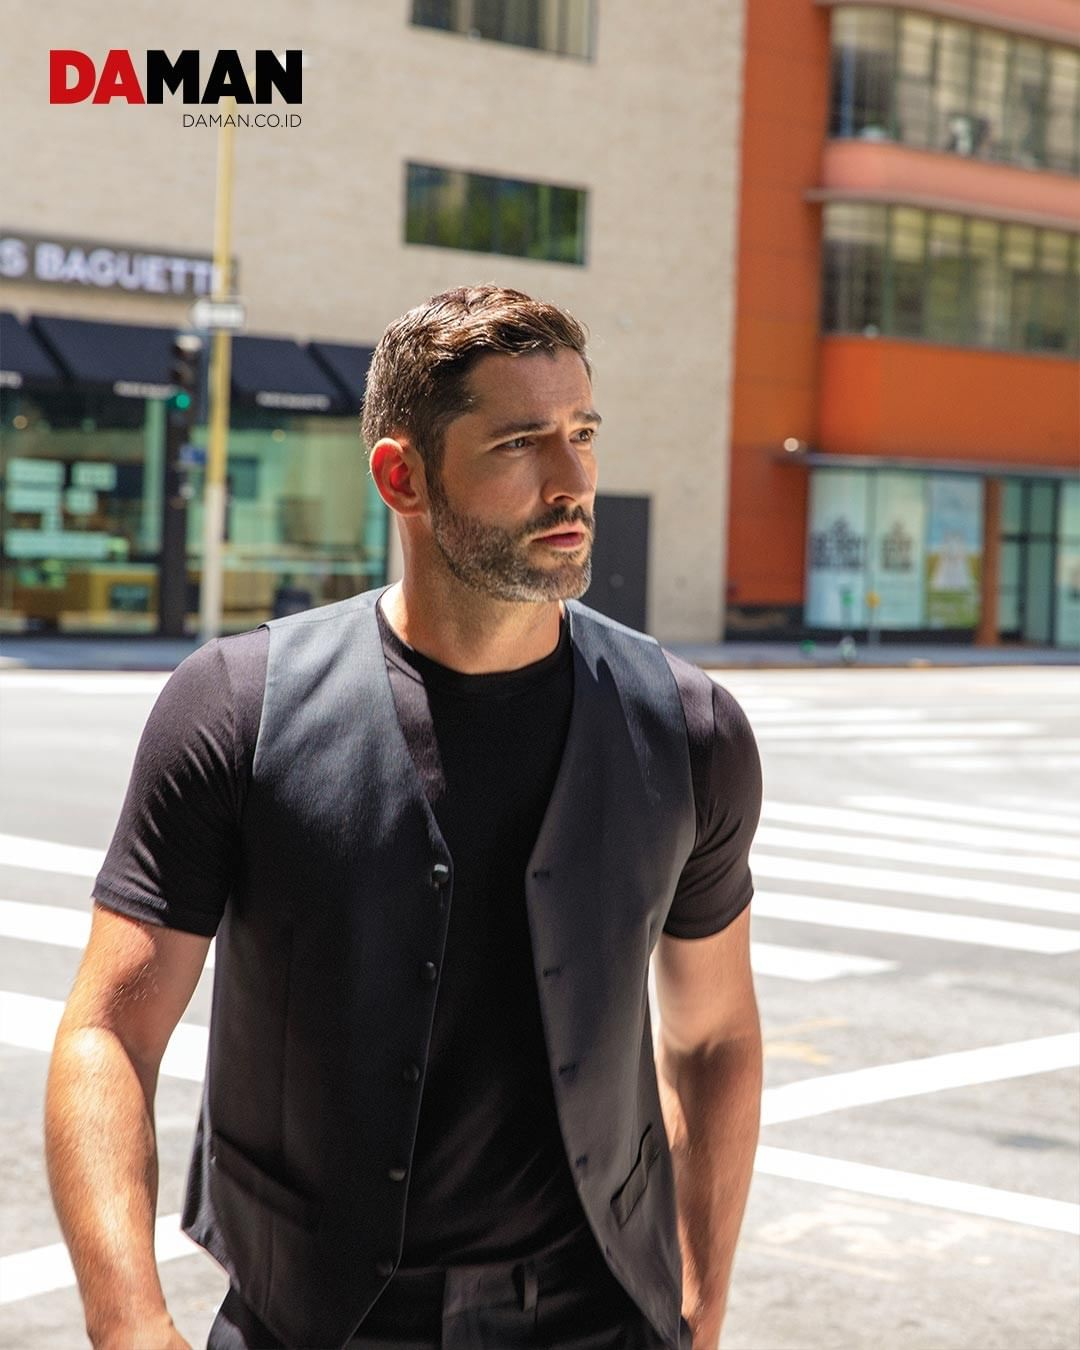 New Photoshoot Pictures Of Tom Ellis From Da Man Magazine About Tom Ellis